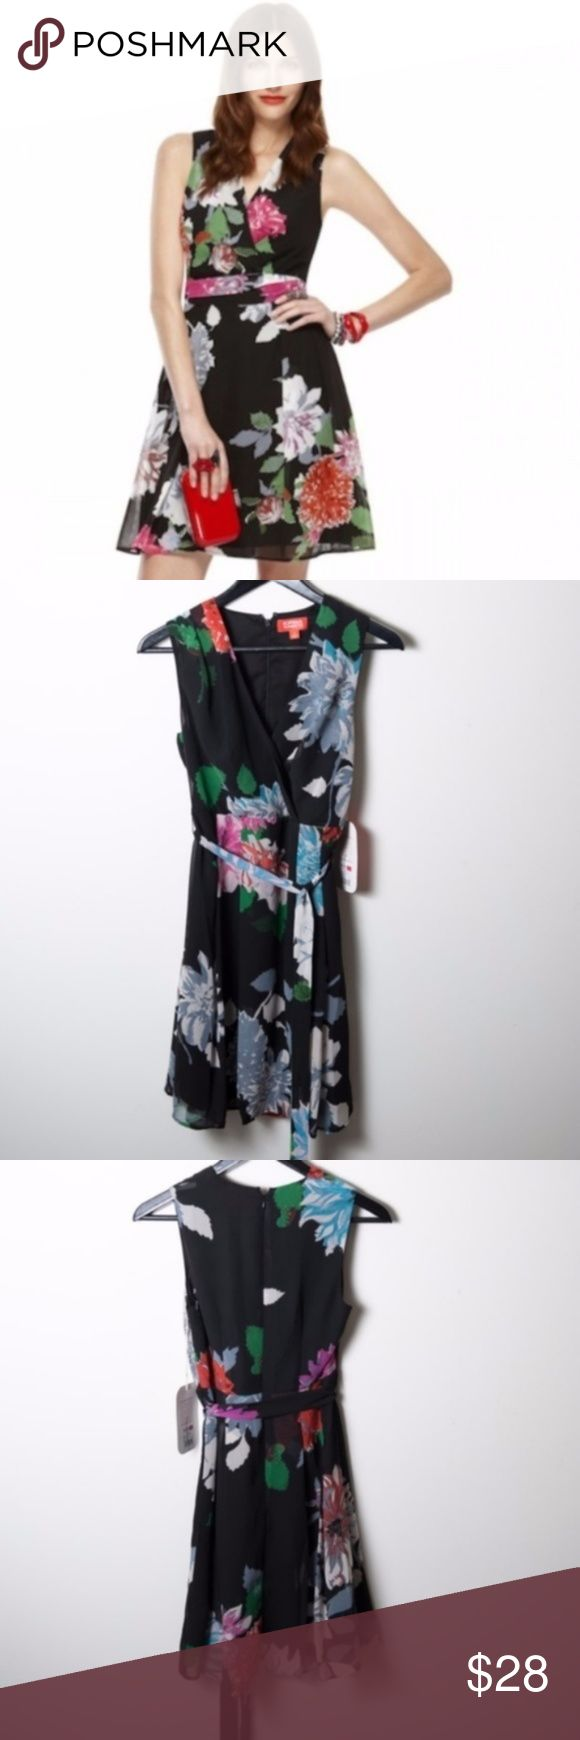 NWT Kirna Zabete Black Floral V-Neck Dress Flowers Kirna Zabete for Target. Black sleeveless dress with bold floral pattern. Red, fuchsia, turquoise and gray flowers with green foliage accents. Wraparound v-neckline, pleats on right shoulder drapes into a faux wraparound, v-neckline. Large pin tucks around waistline, spills open to a flowing chiffon skirt. Sheer dress, with solid black layer underneath. Hidden back zipper with hook and eye closure. Matching fabric sash to be worn tied around…